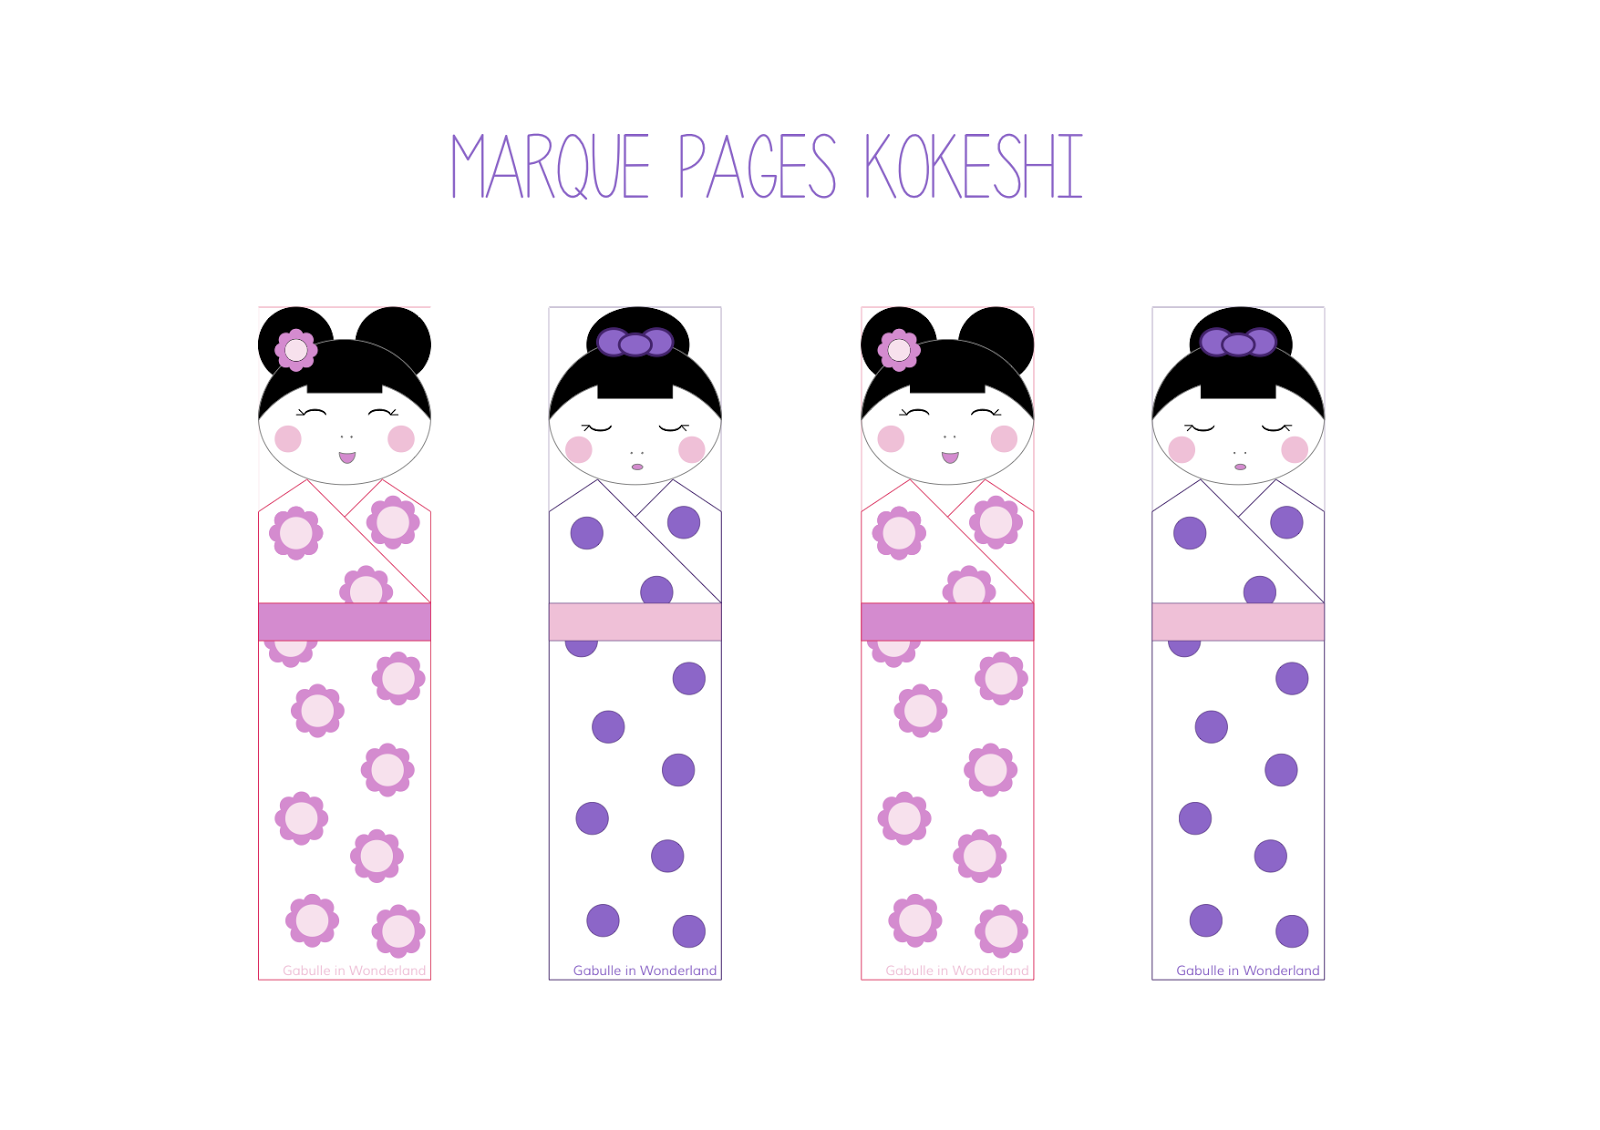 Gut bekannt Gabulle in Wonderland: Marque pages kokeshi à imprimer BJ24